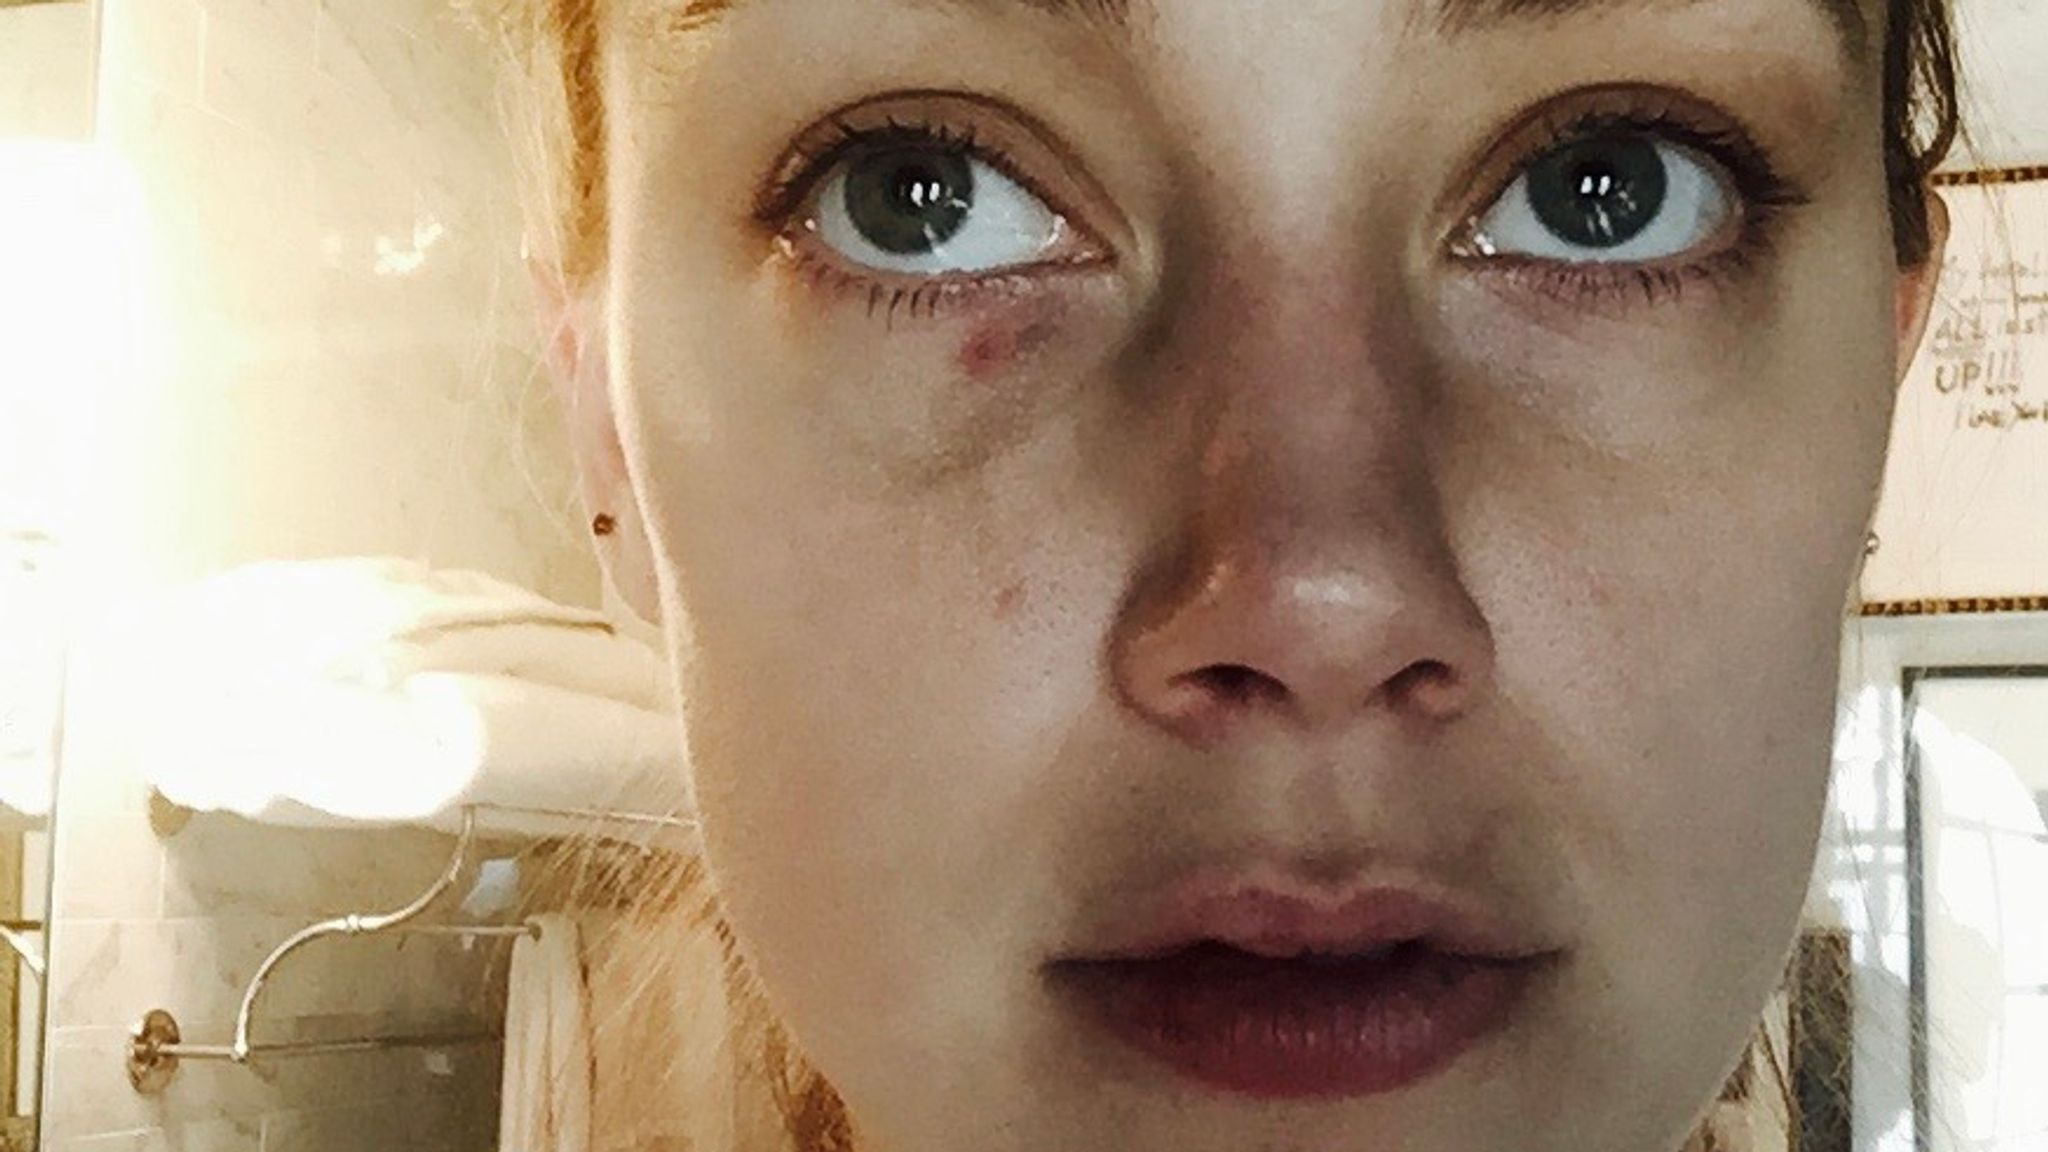 Amber Heard's alleged injuries from the 'headbutt' incident in December 2015